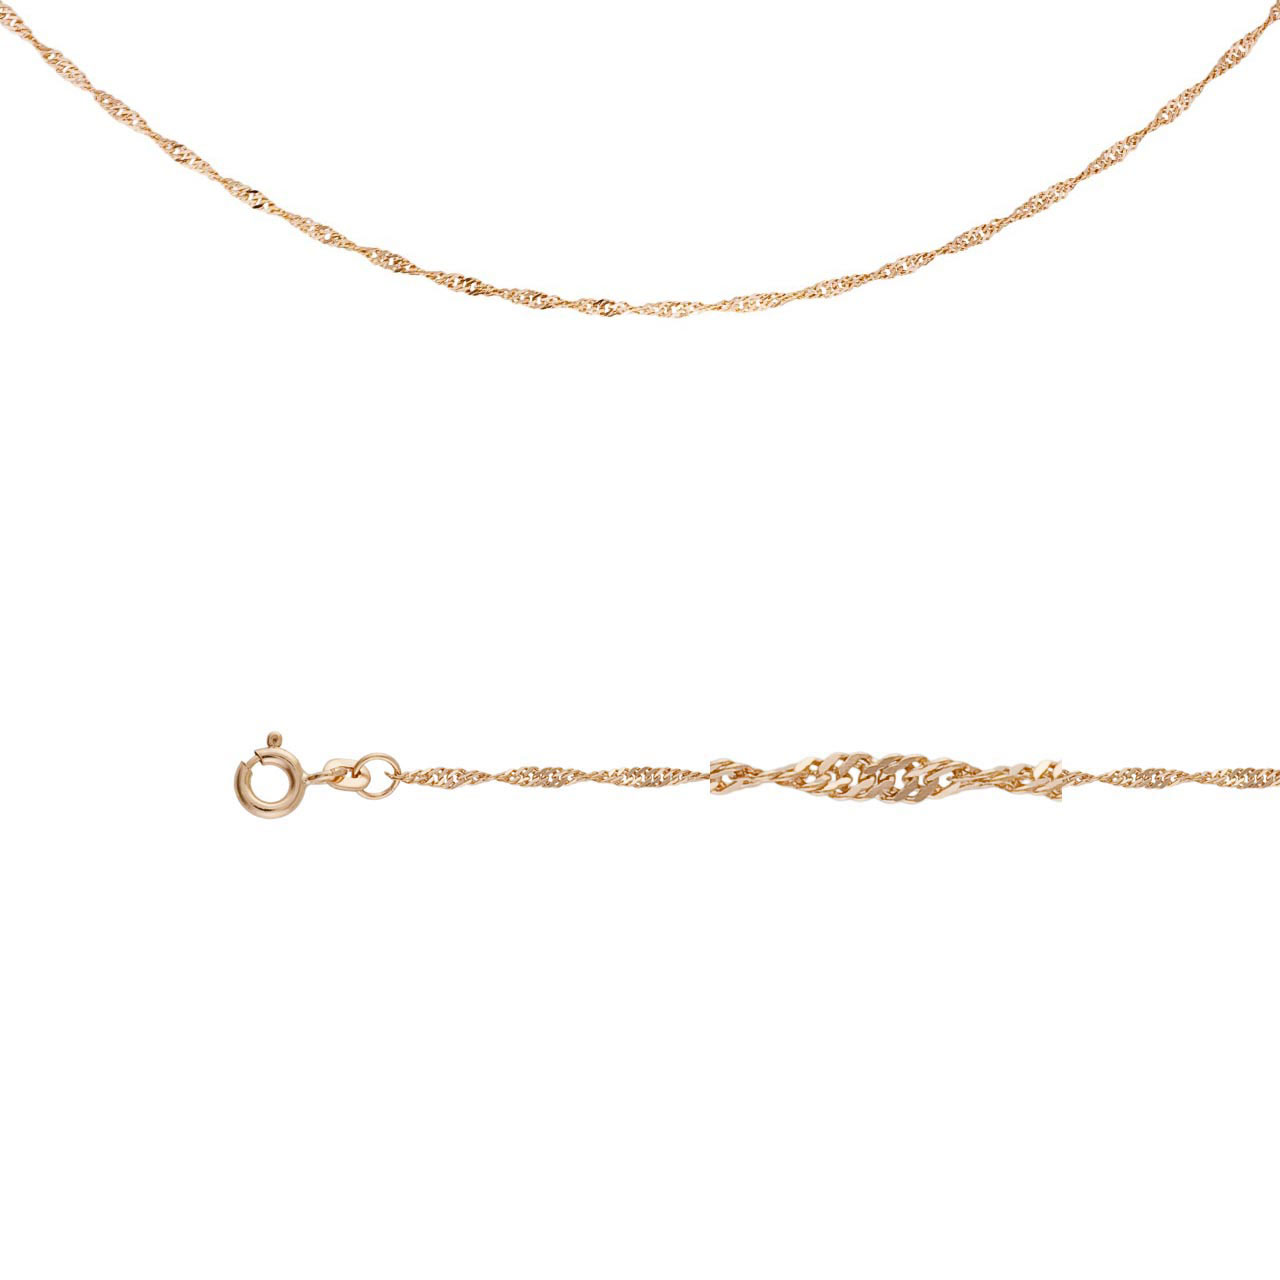 Singapore-link Chain (0.35mm Gold Wire)